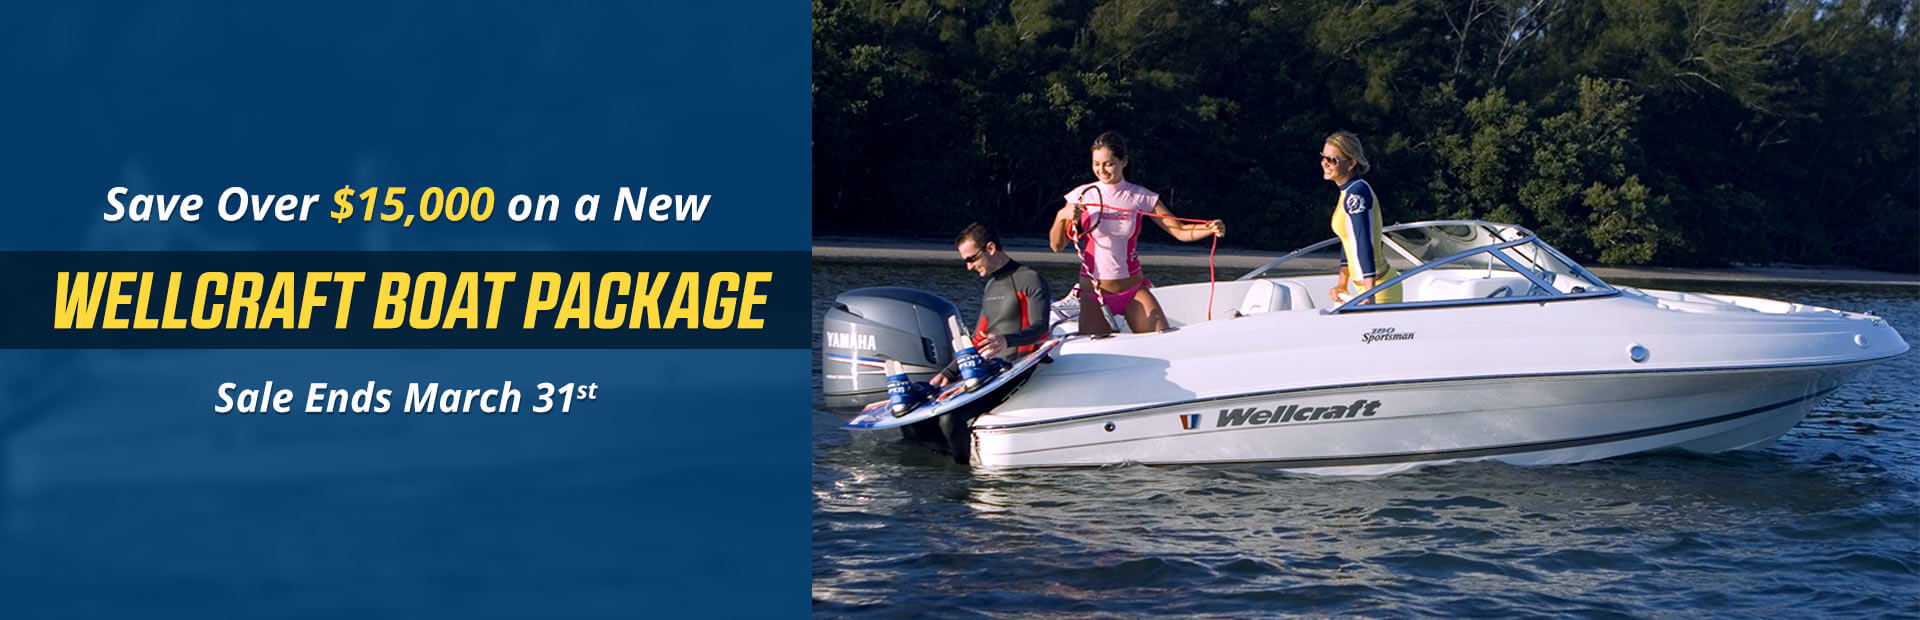 Save over $15,000 on a new Wellcraft boat package! This sale ends March 31st.